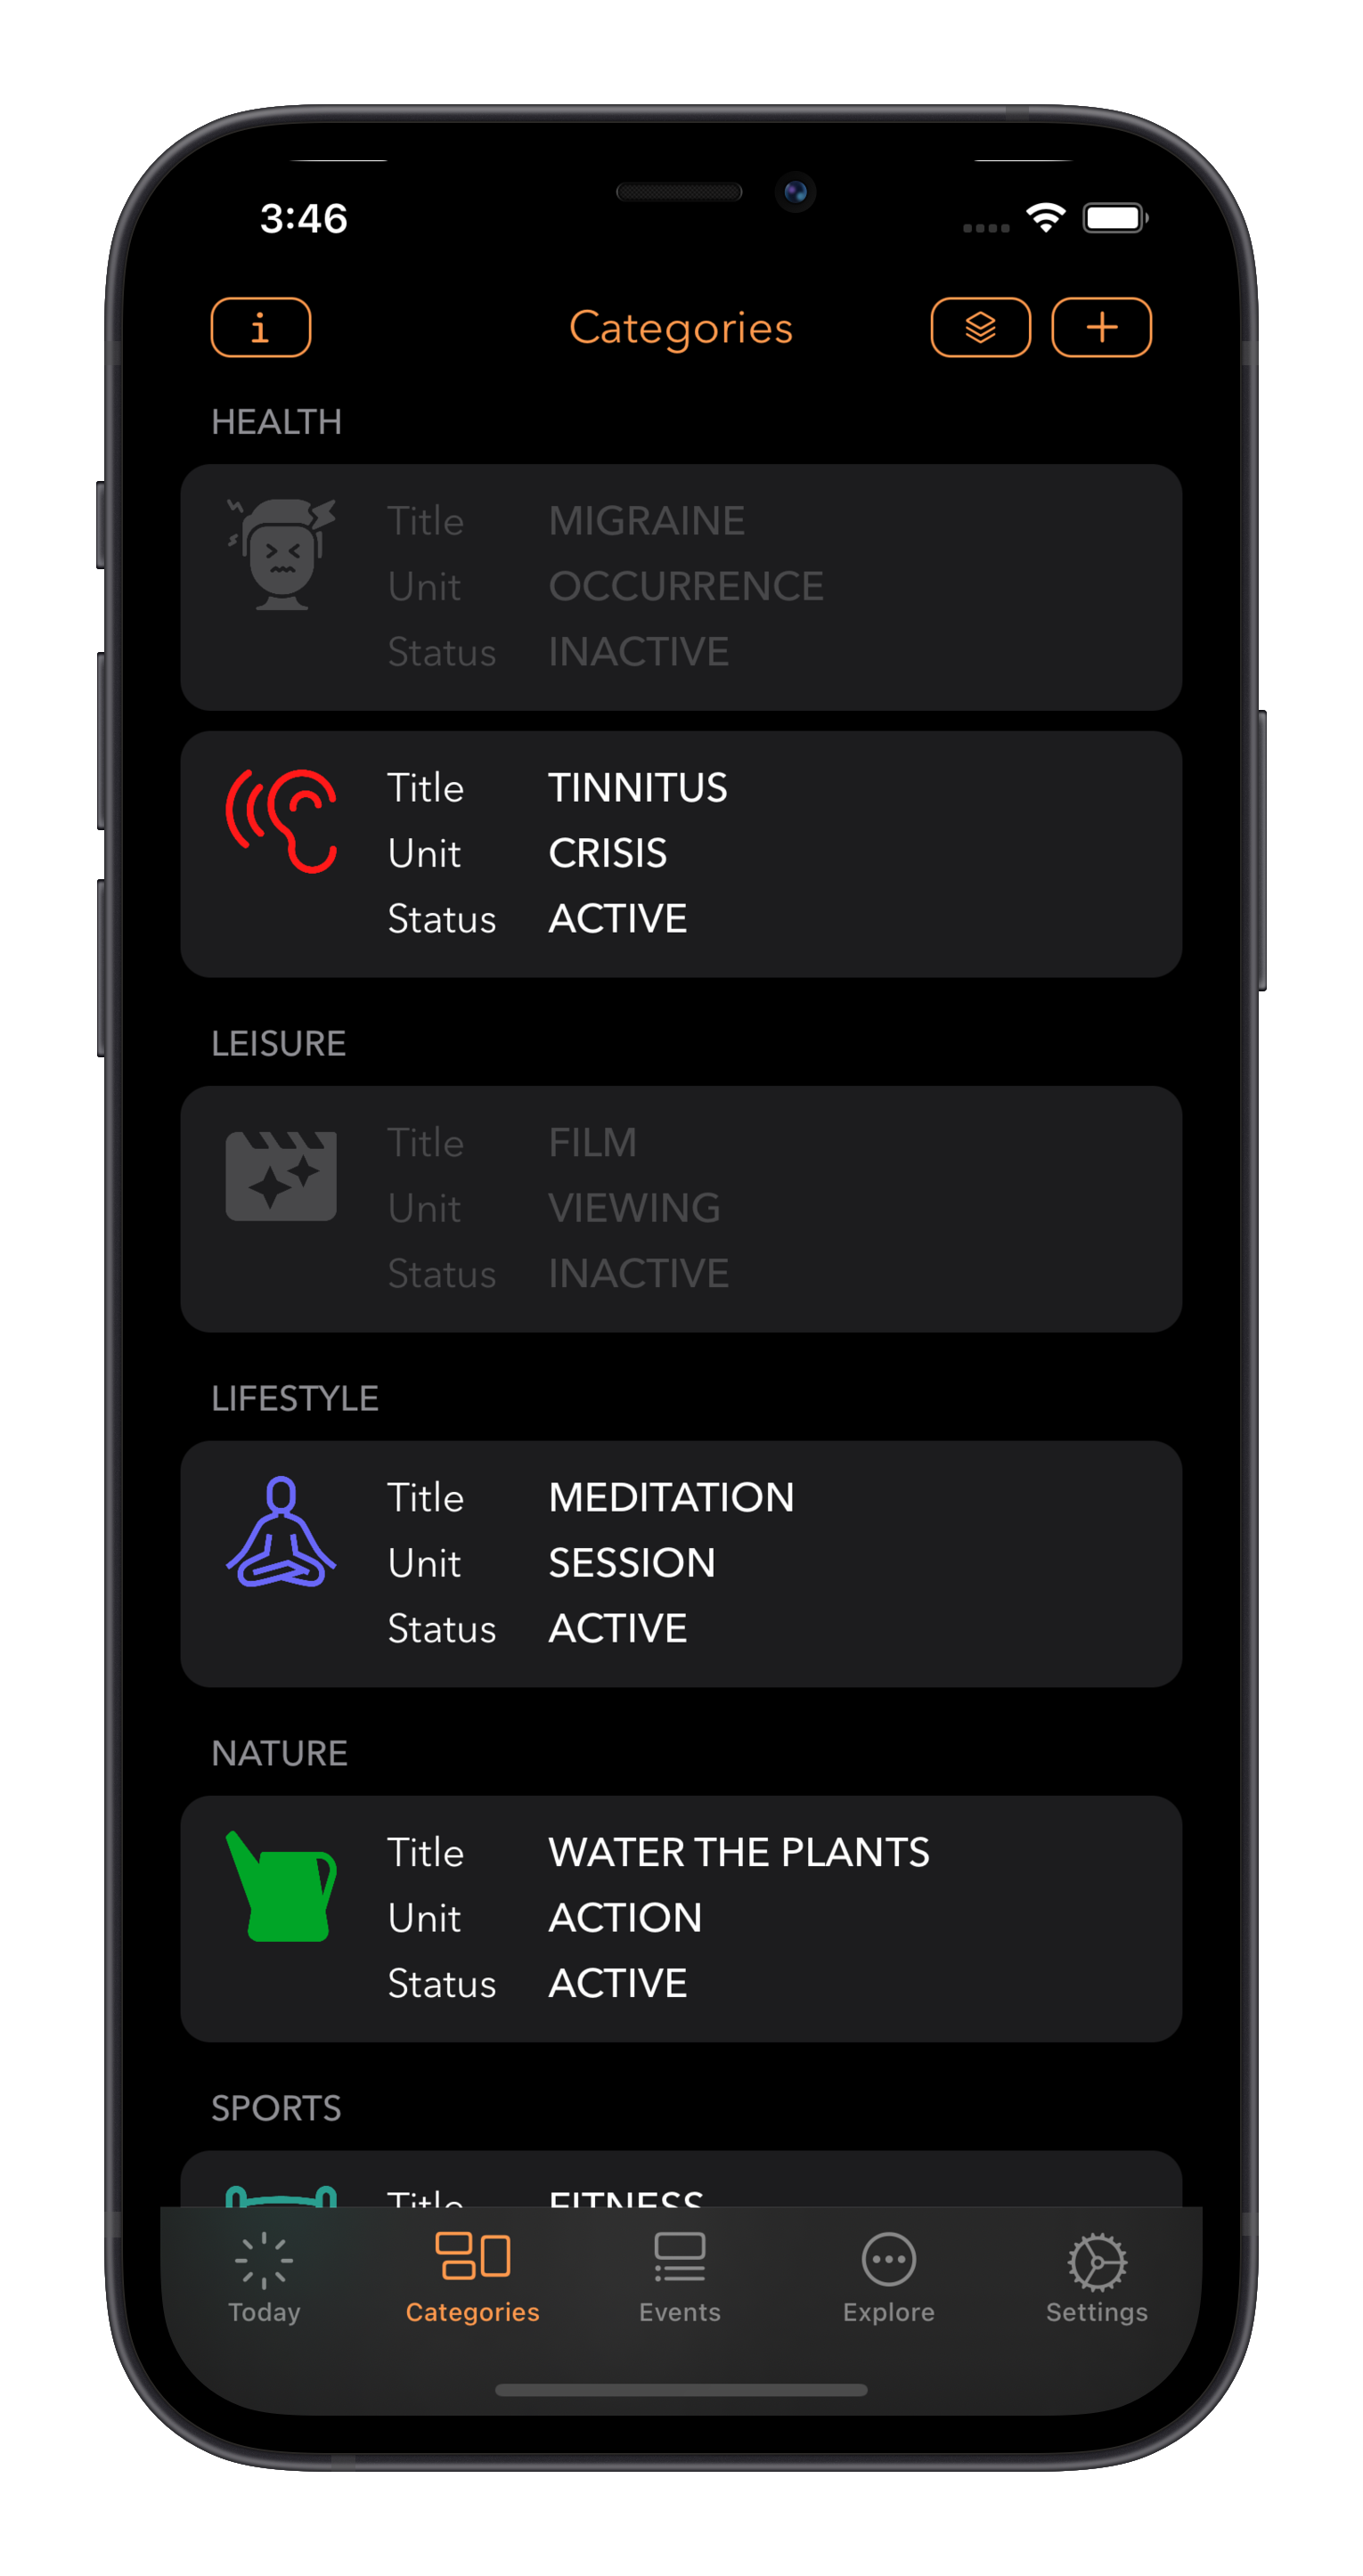 Log A Day categories listed by group